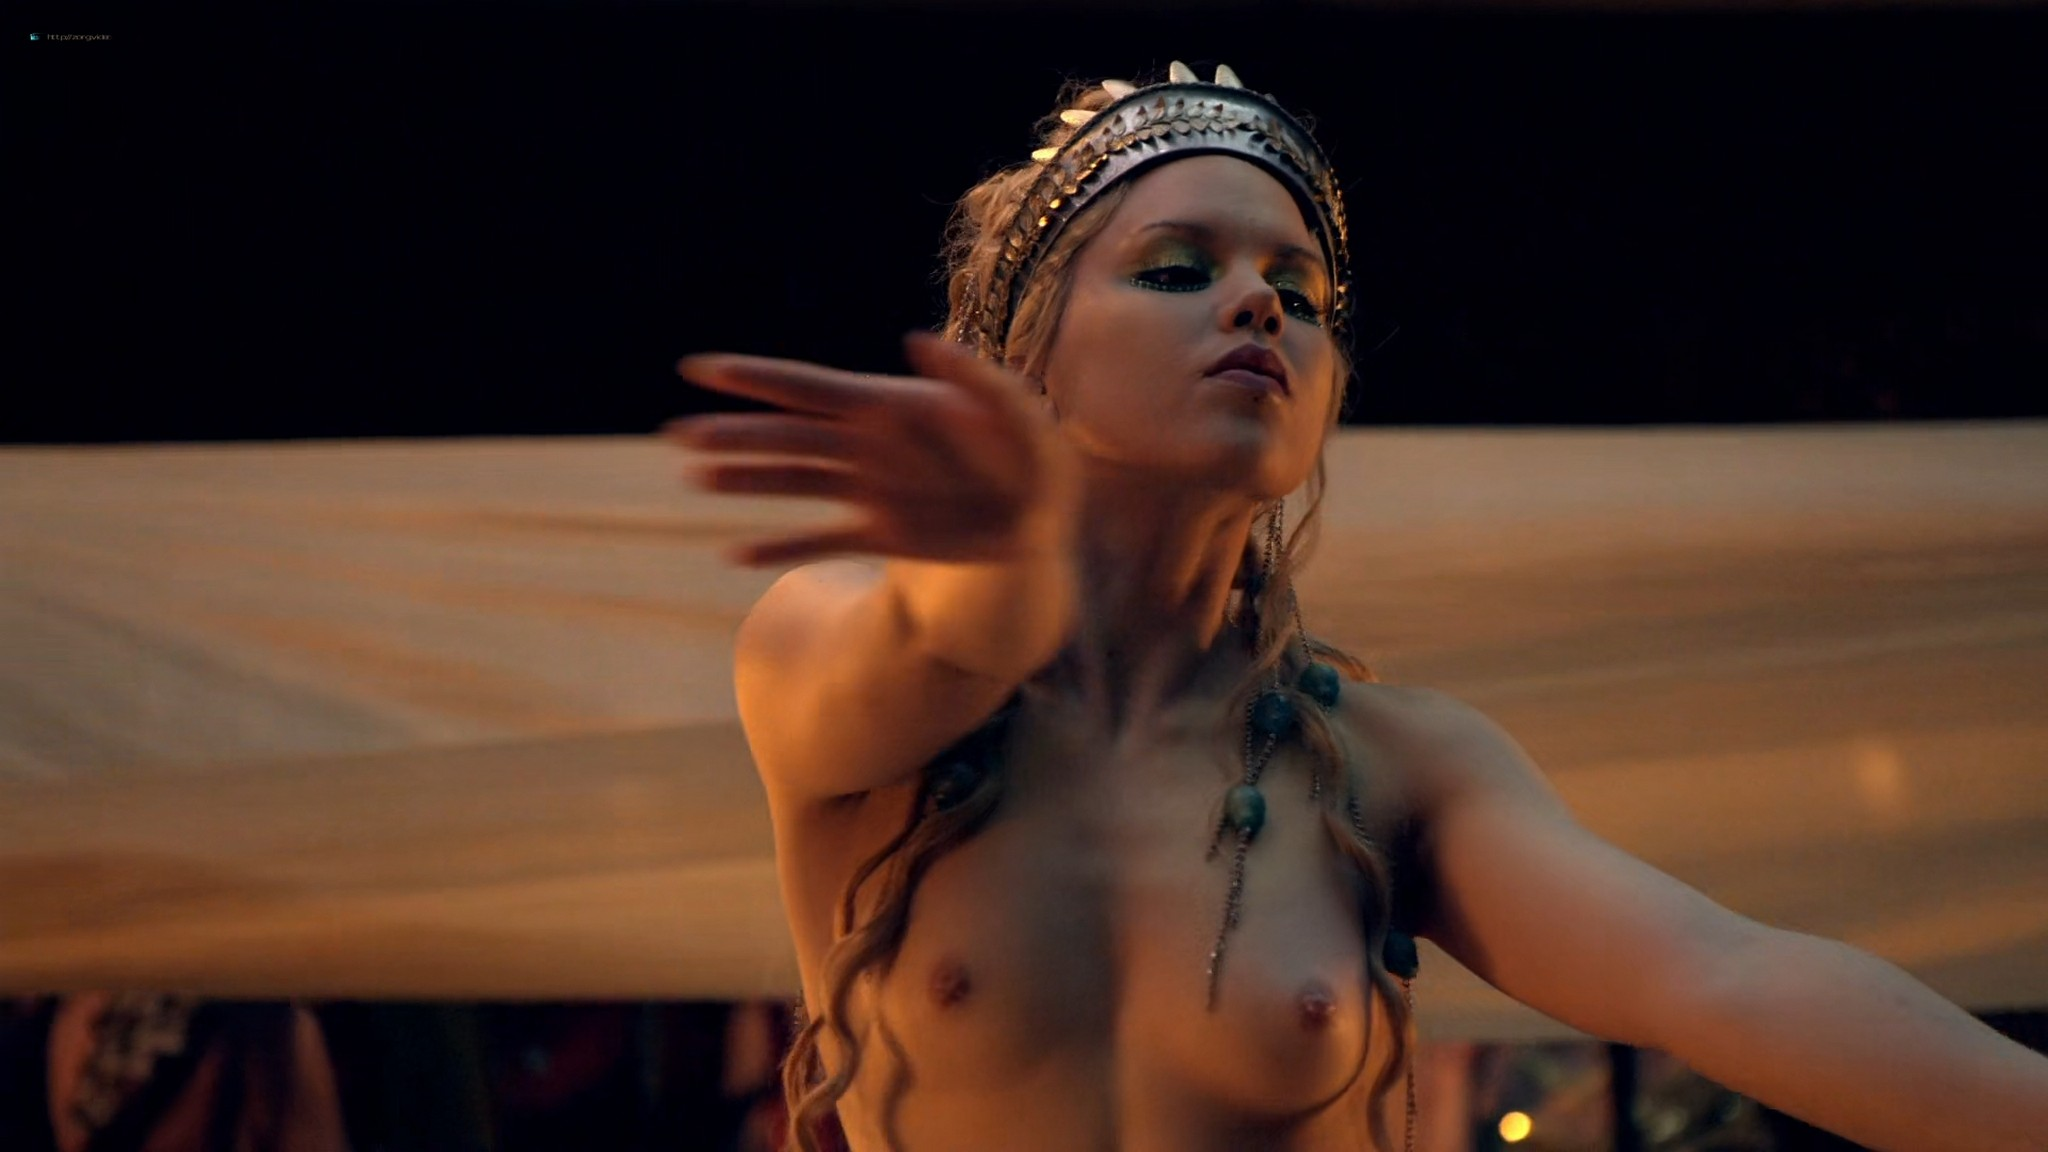 Viva Bianca nude Lucy Lawless nude sex others nude - Spartacus - Vengeance (2012) e4 1080p BluRay (16)